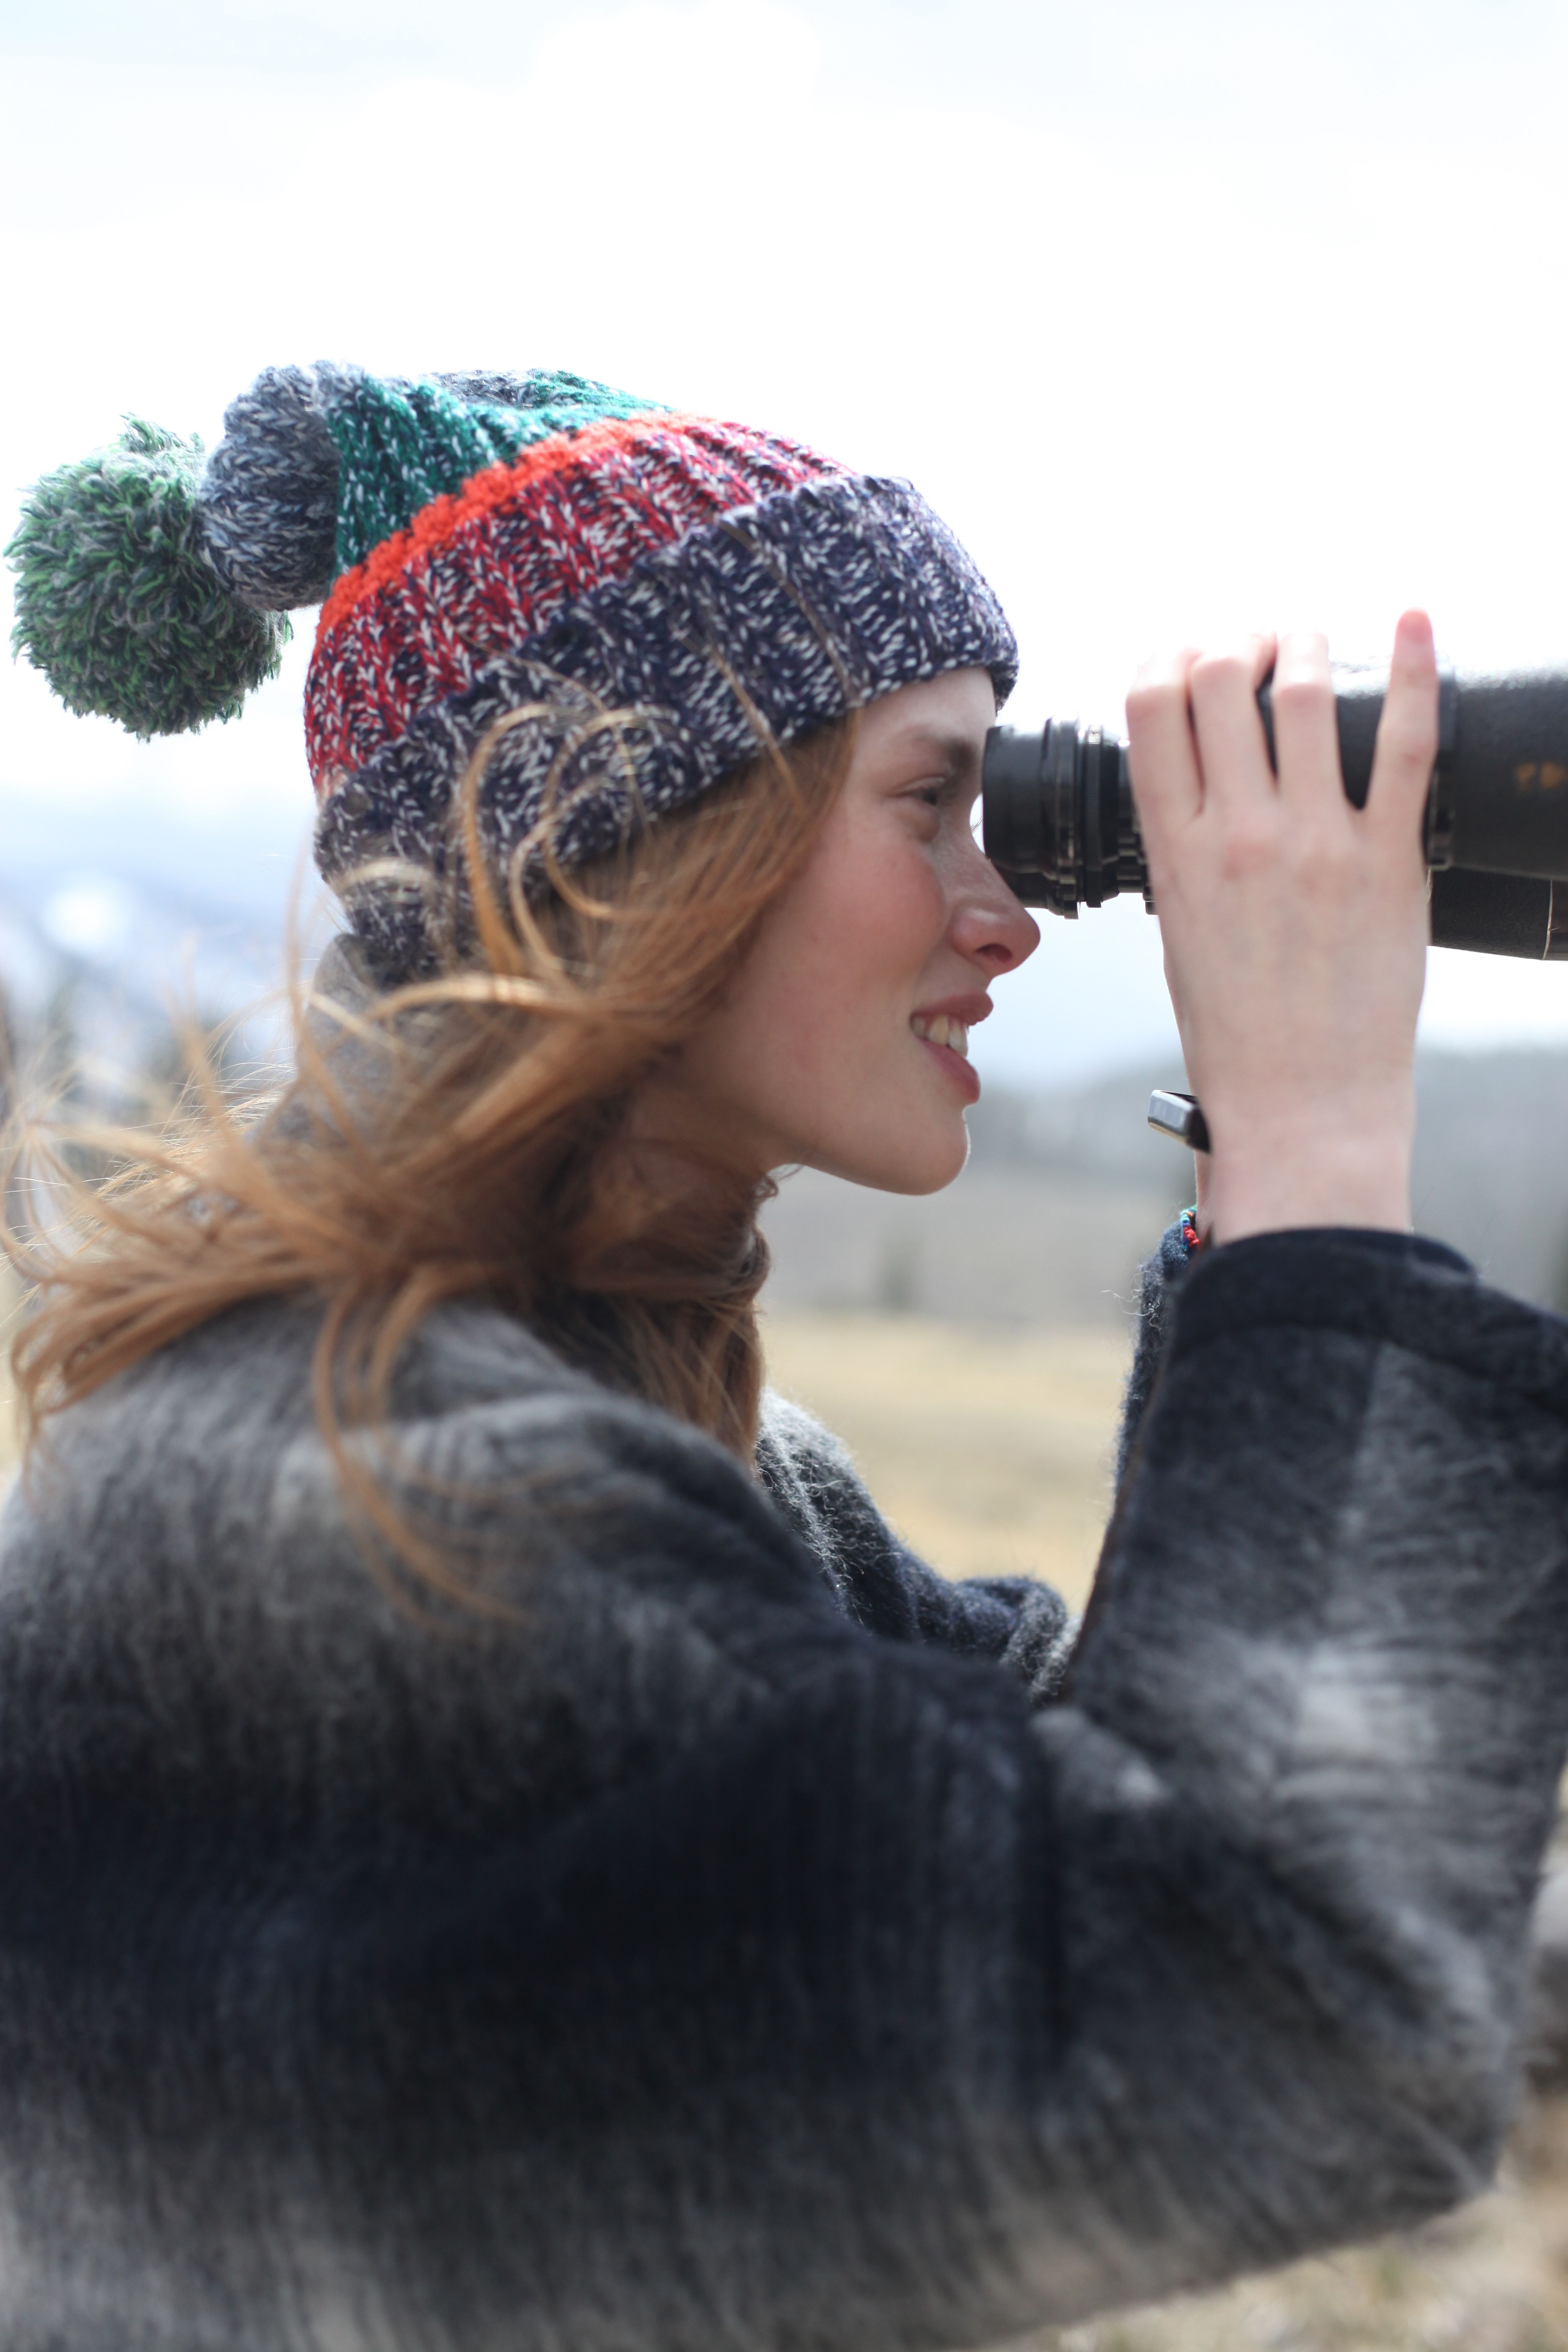 dc8817de58edcf Spotted: the ultimate winter hat from Tommy Hilfiger. | PRE-FALL17 ...